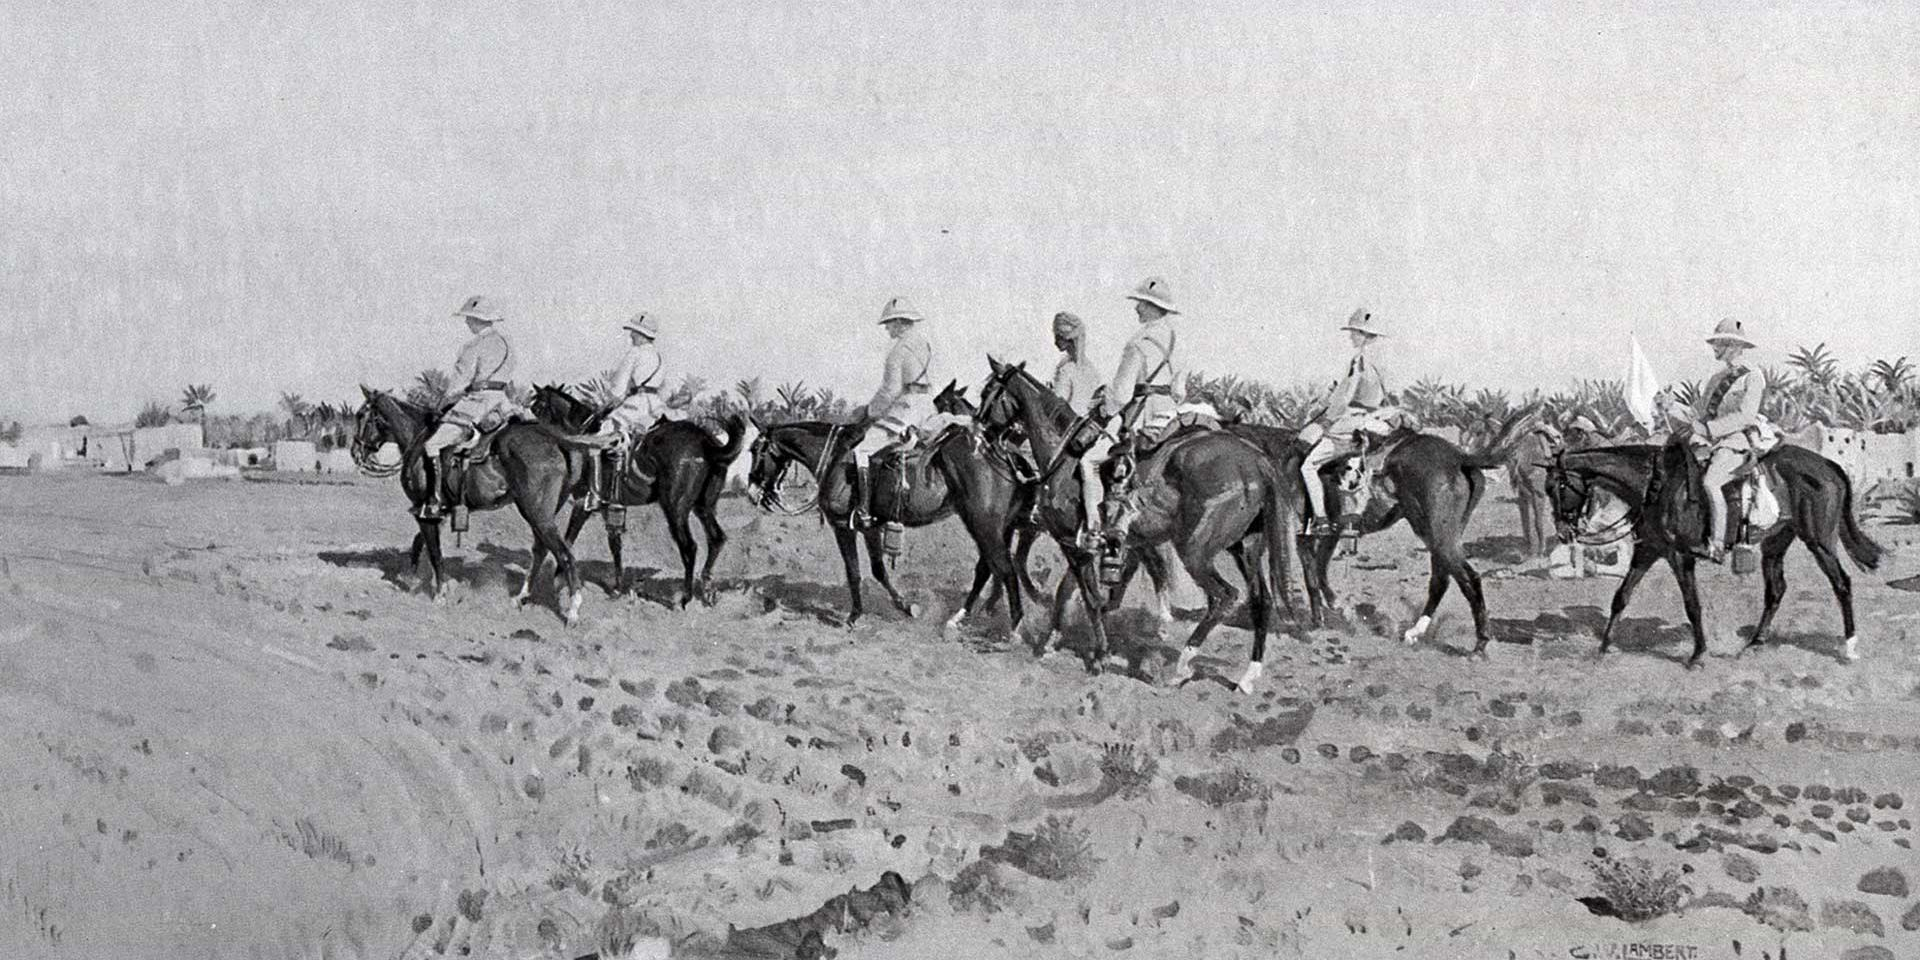 A patrol of the 14th (King's) Hussars in Mesopotamia, 1917